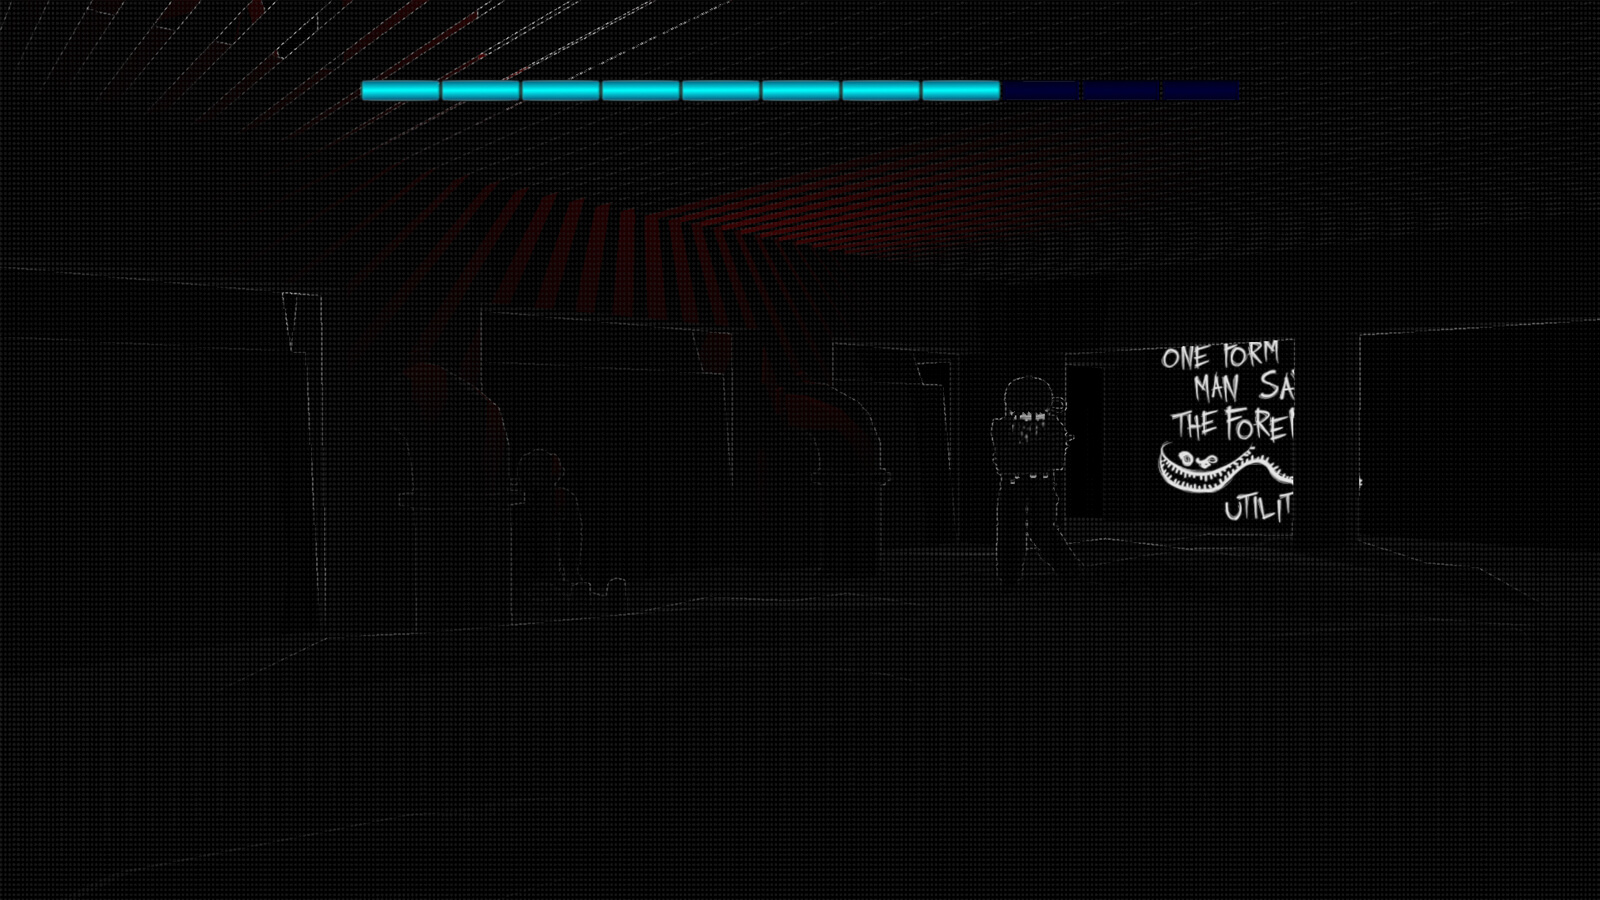 A dark room with the sonar outline of a monster in the distance and writing on the wall.